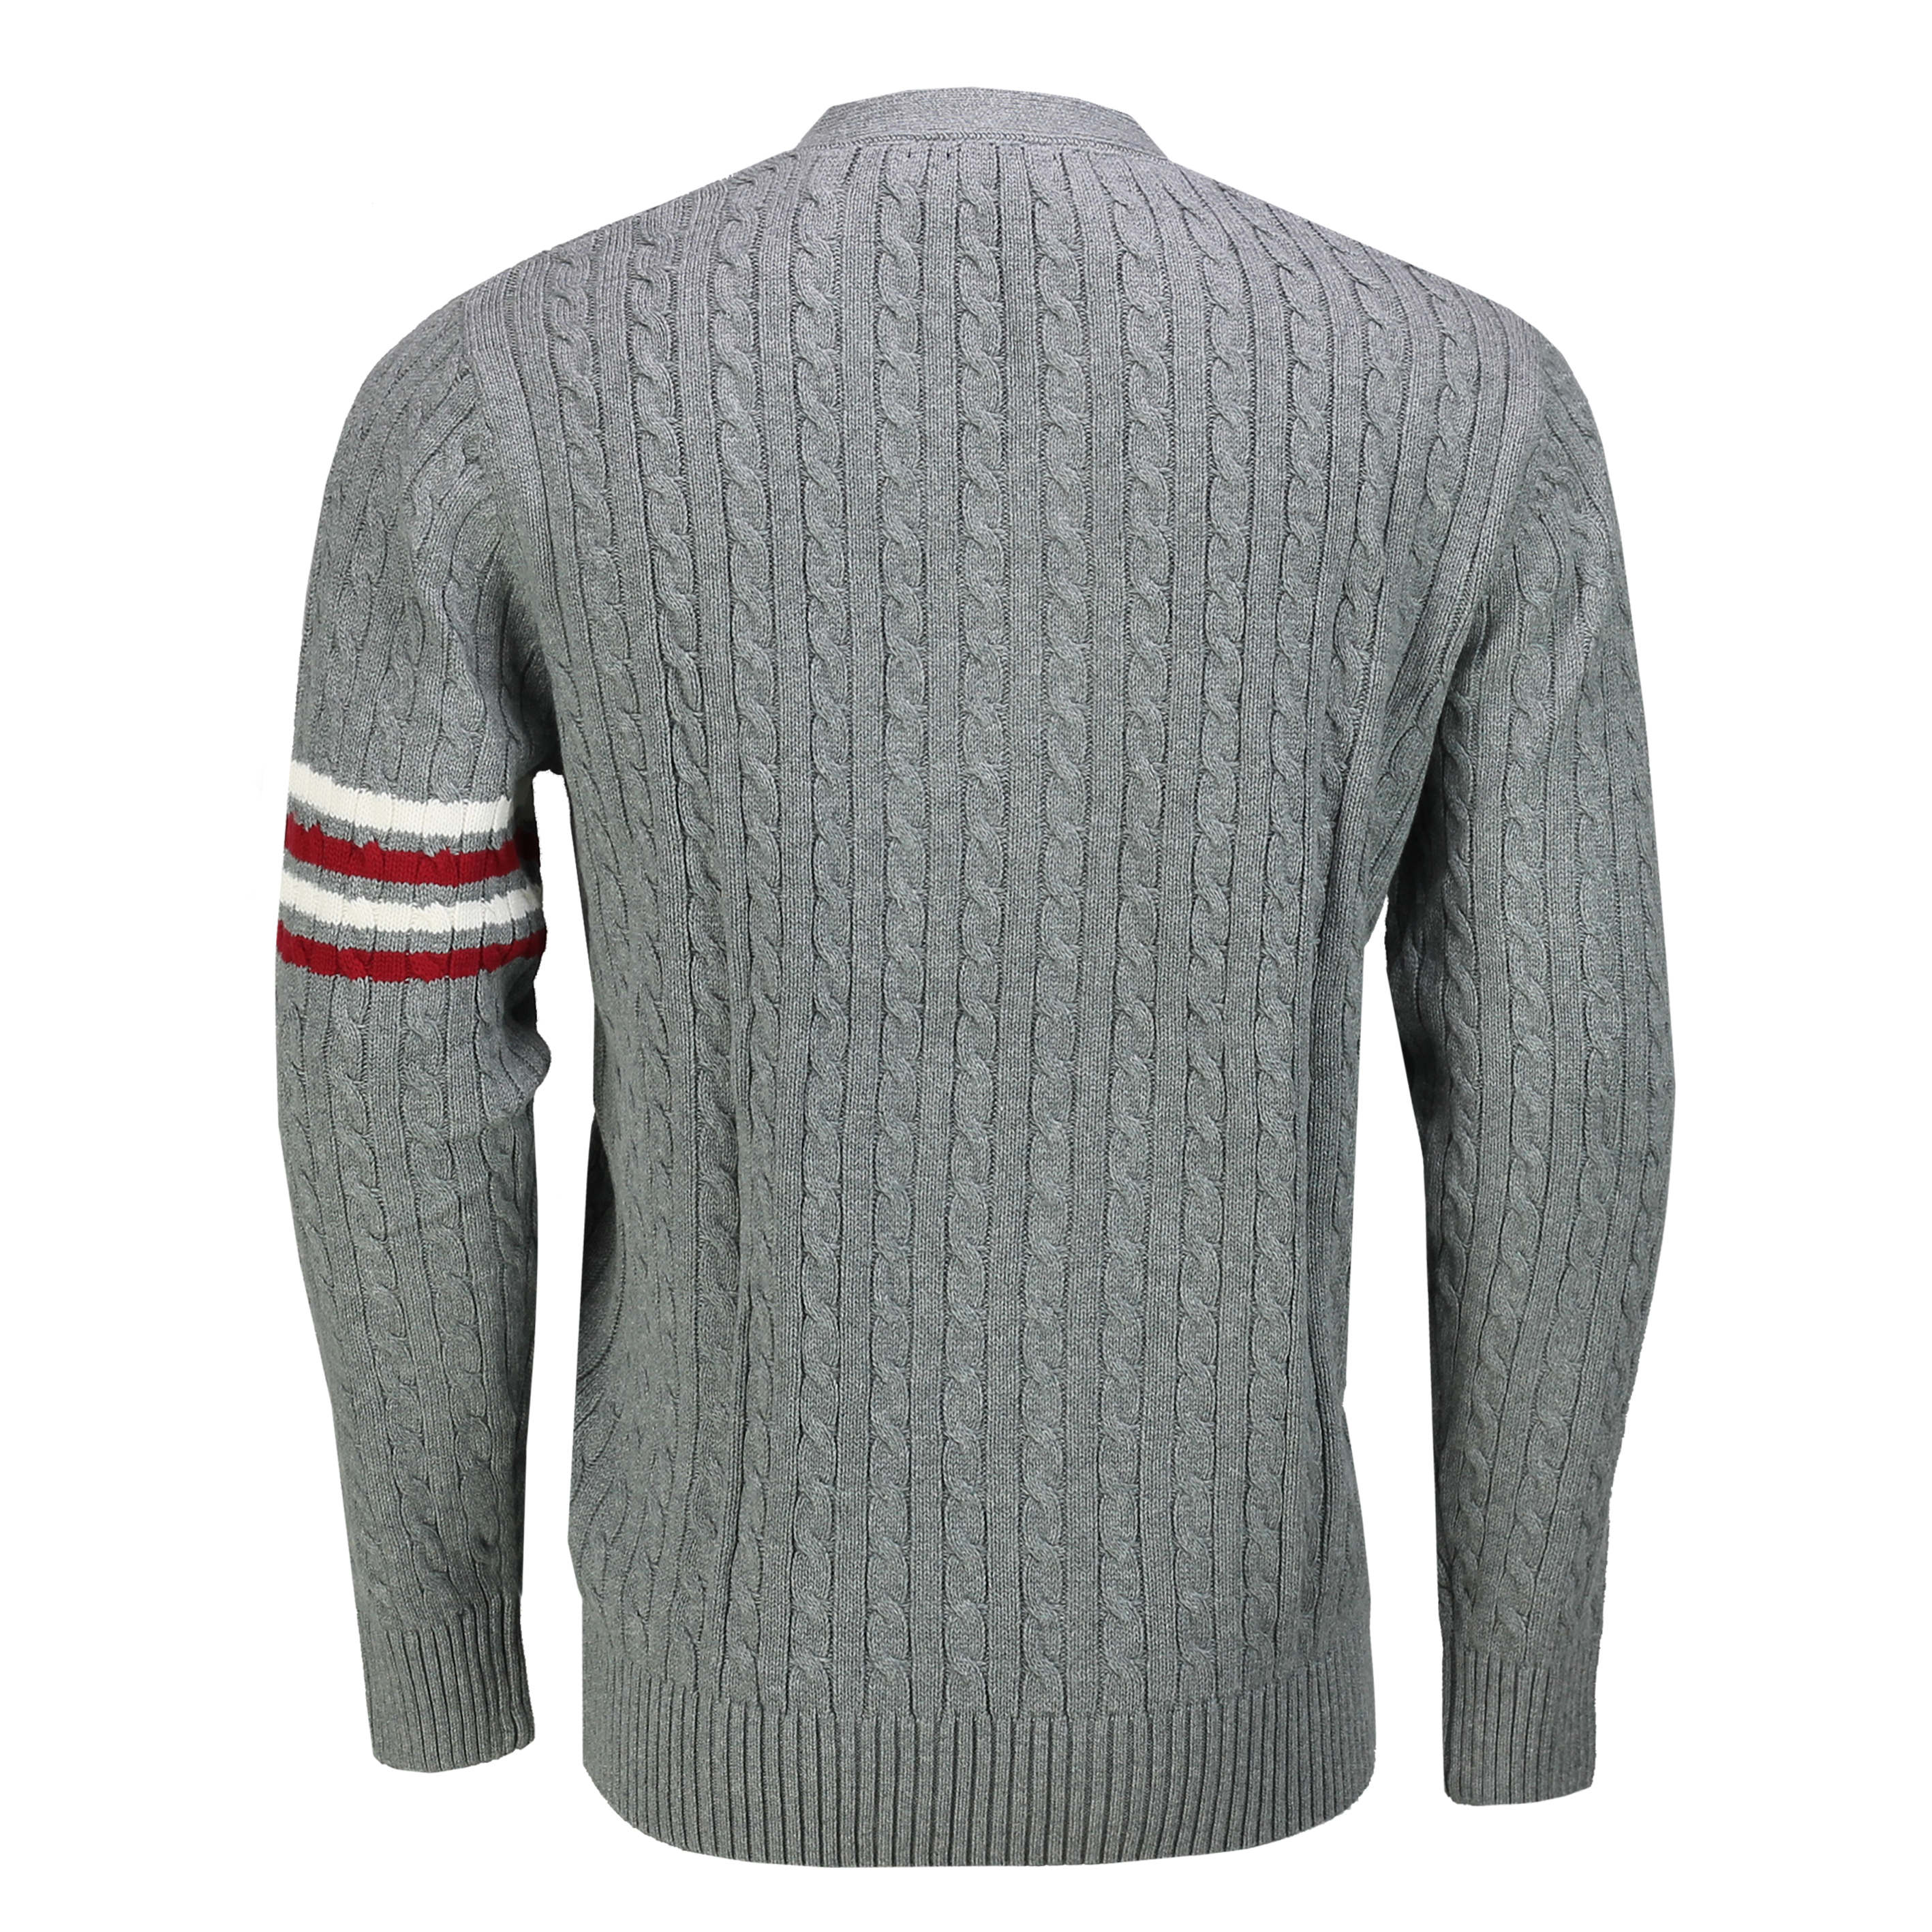 Mens Cardigan with Buttons Pockets Classic Chunky Cable Knit Jumper Sweater Top